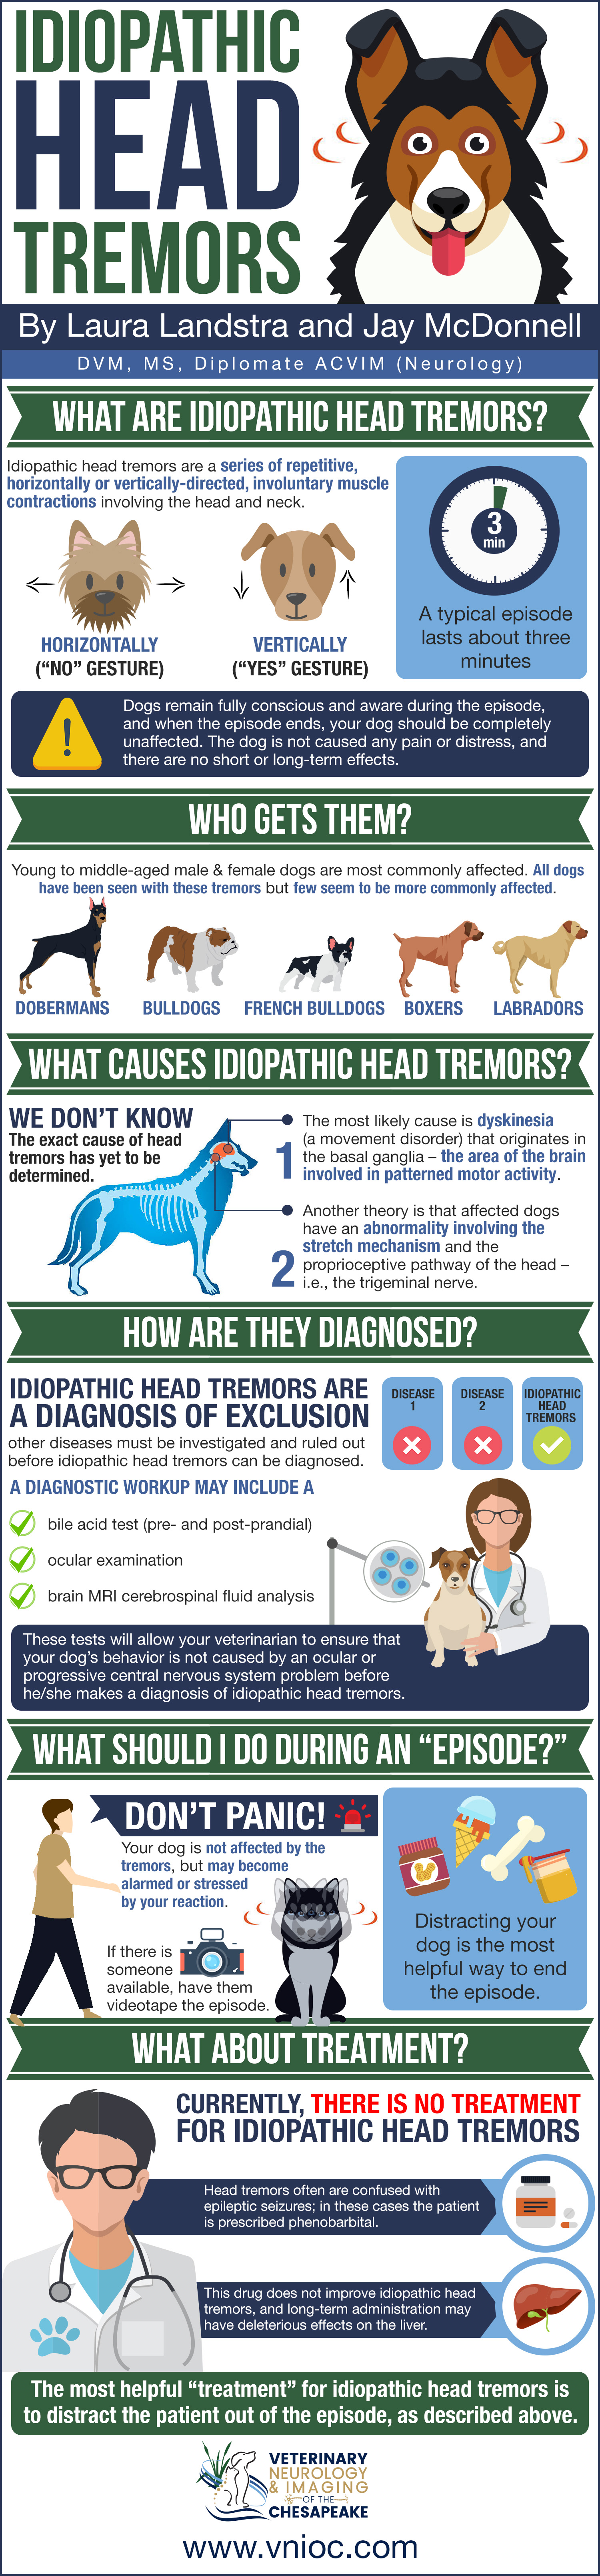 Idiopathic Head Tremors in Dogs Infographic | Veterinary